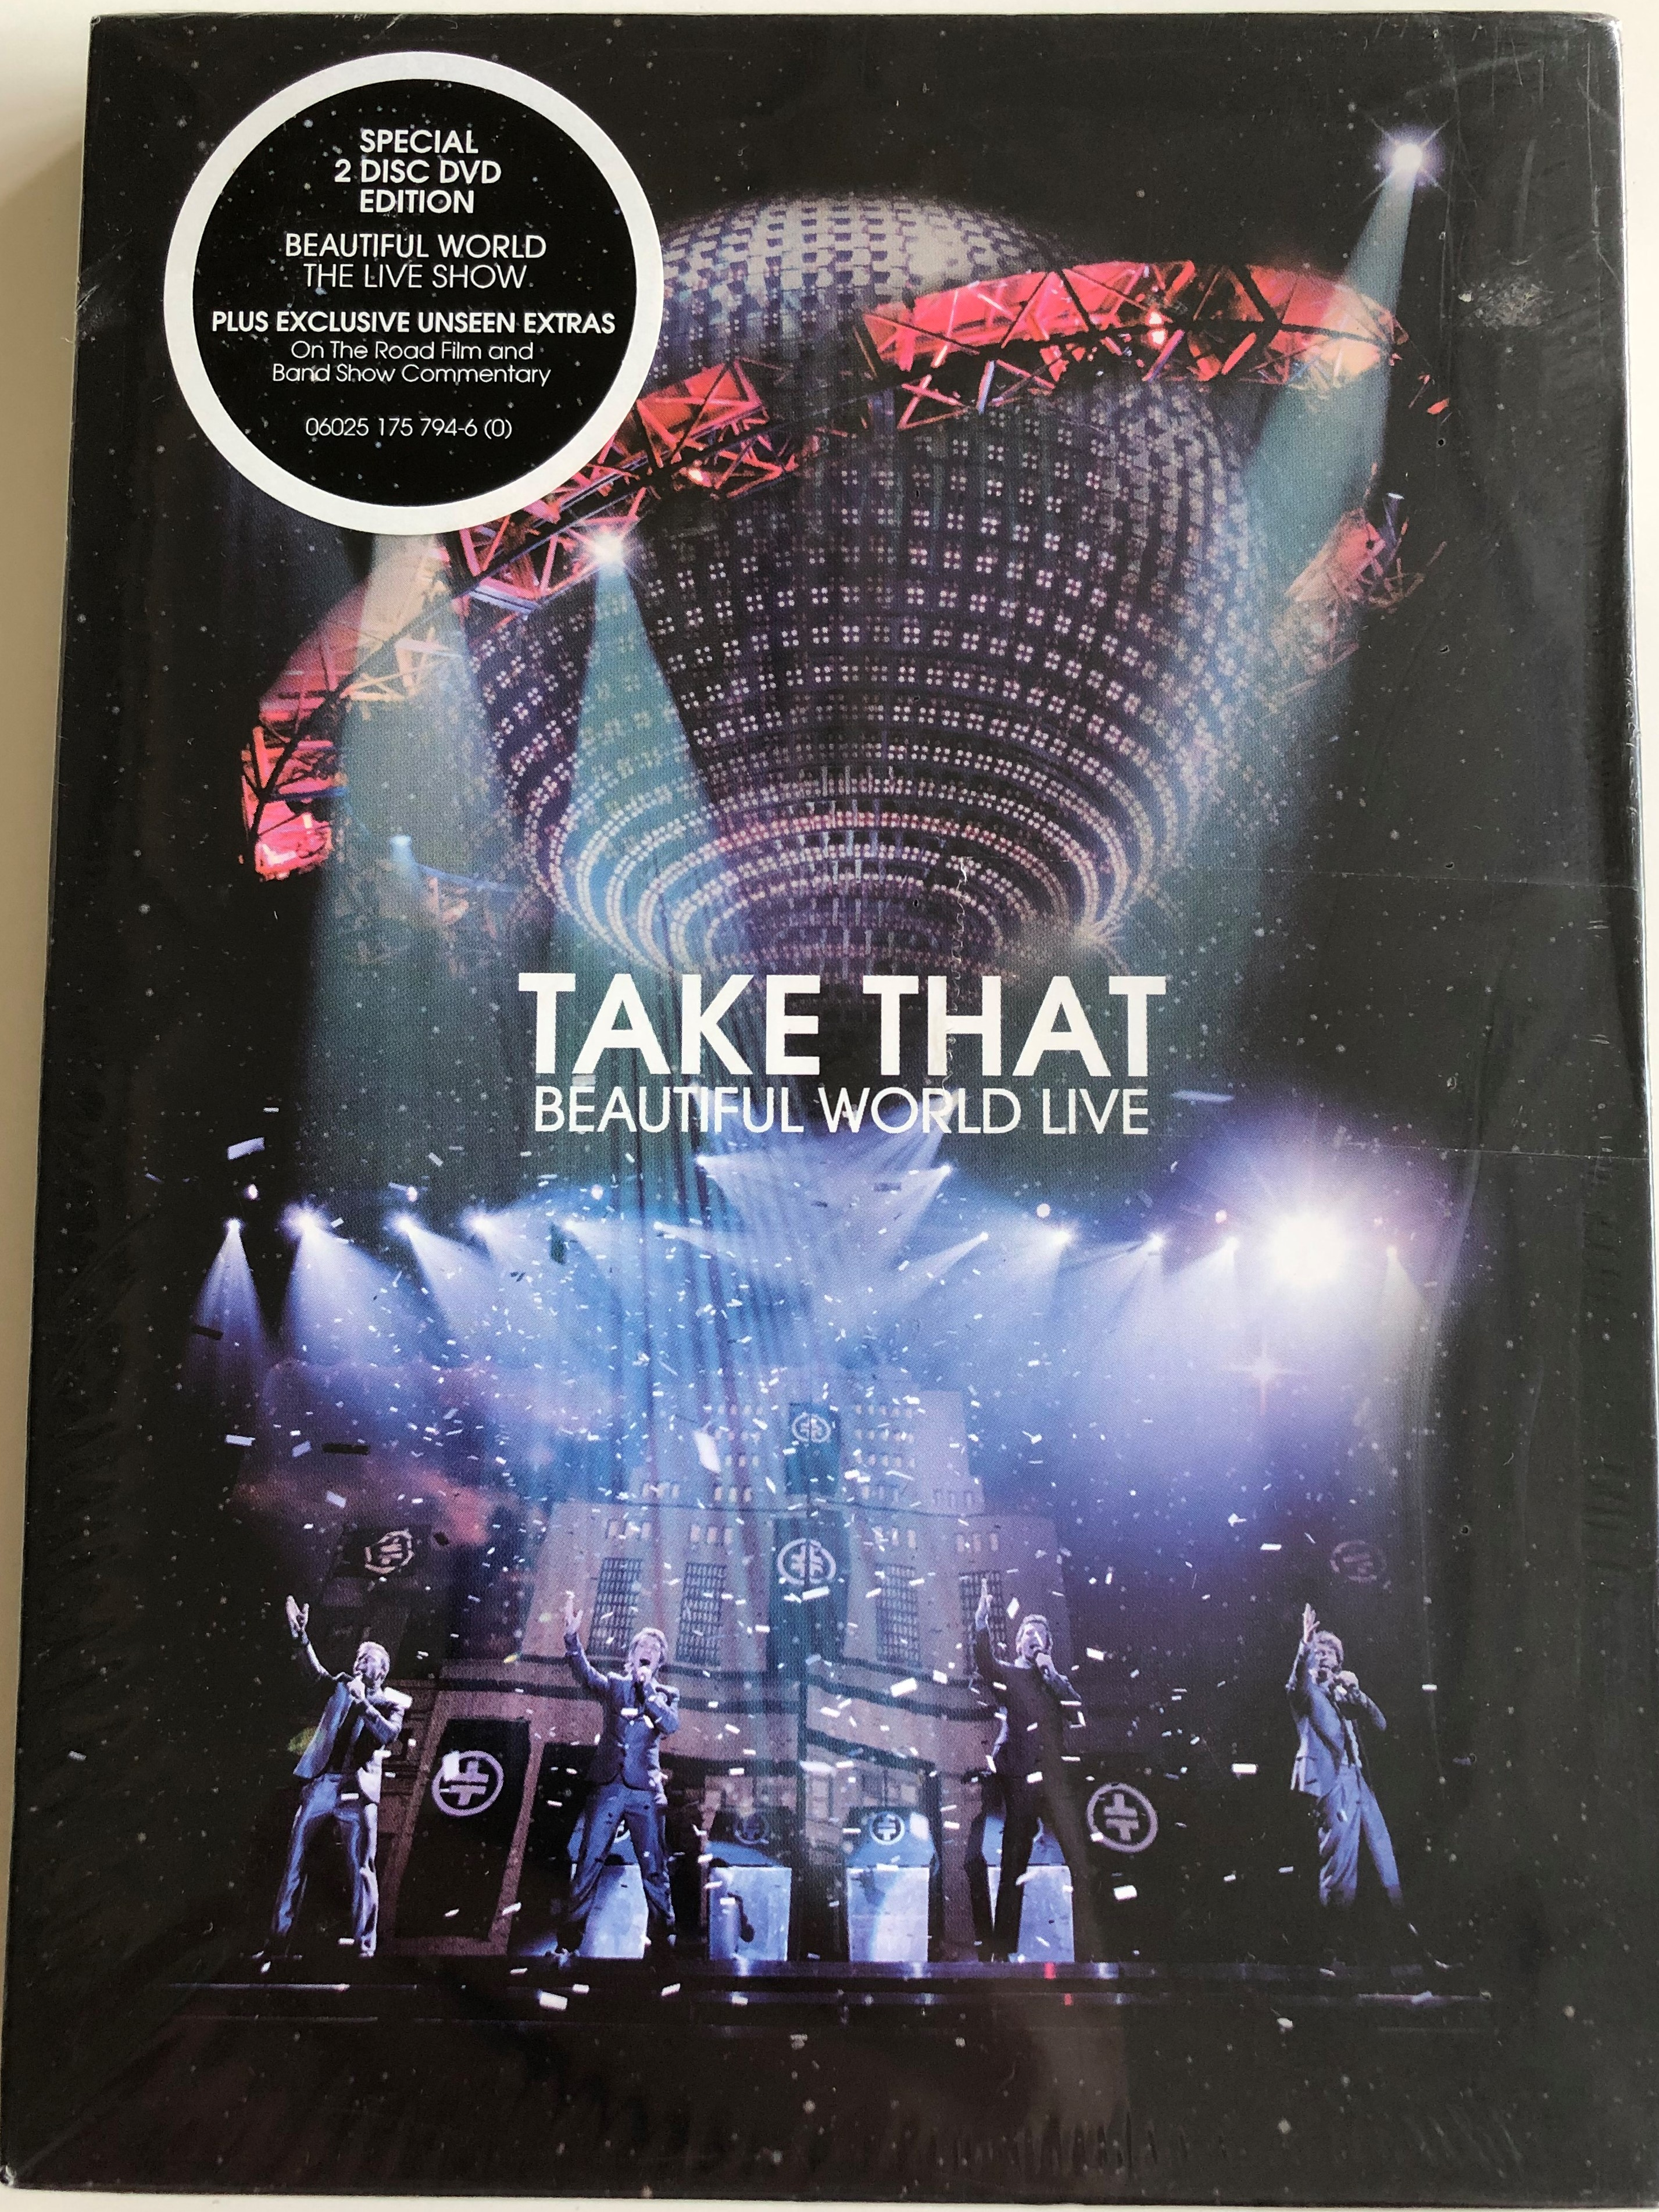 take-that-beautiful-world-live-dvd-2008-filmed-live-at-the-o2-special-2-disc-dvd-plus-exclusive-unseen-extras-the-journey-exclusive-on-the-road-film-1-.jpg